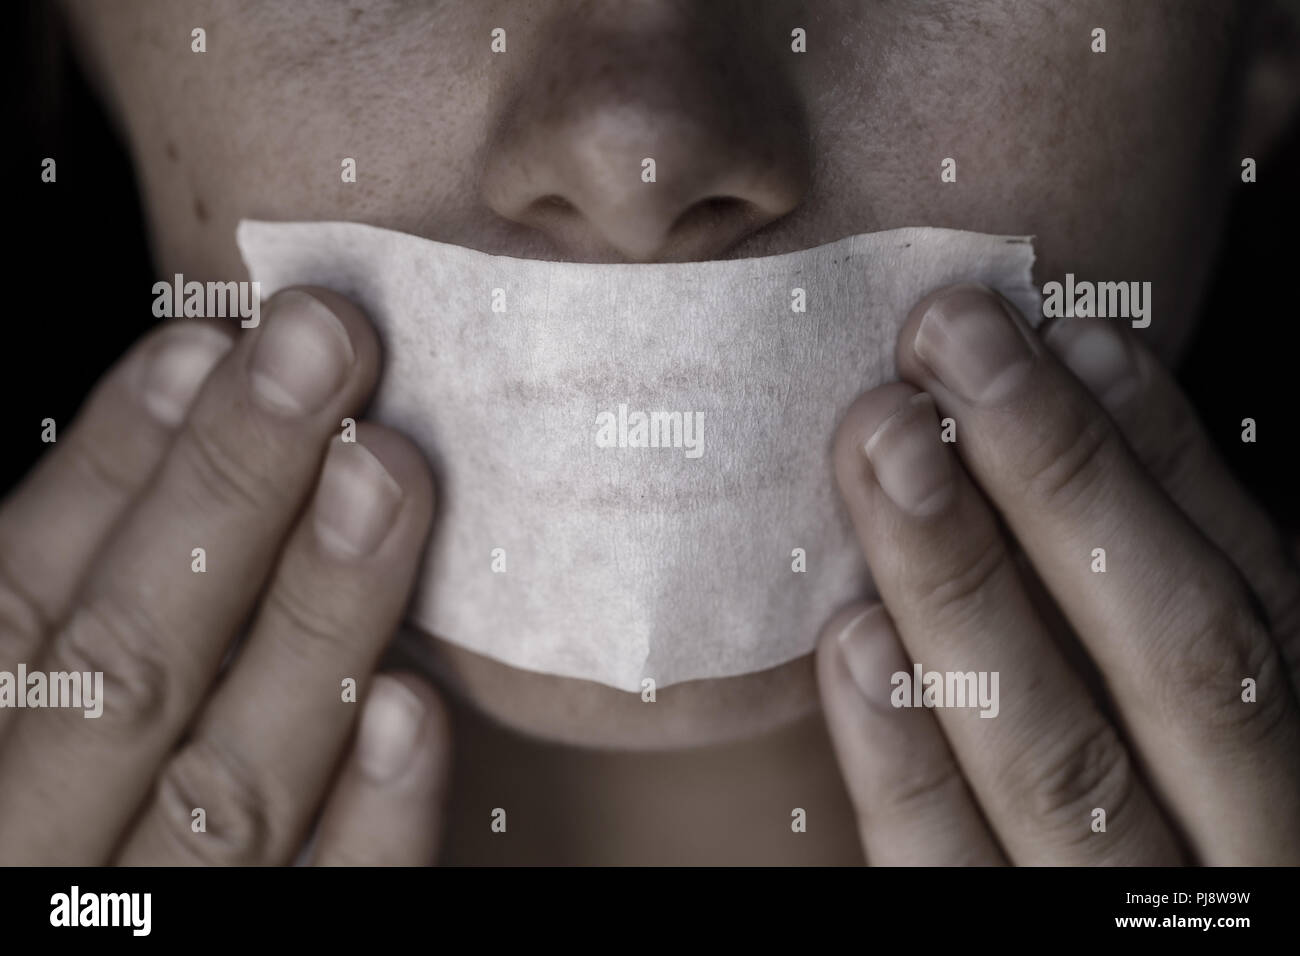 Concept on the topic of freedom of speech: the girl's face is sealed with scotch tape Stock Photo